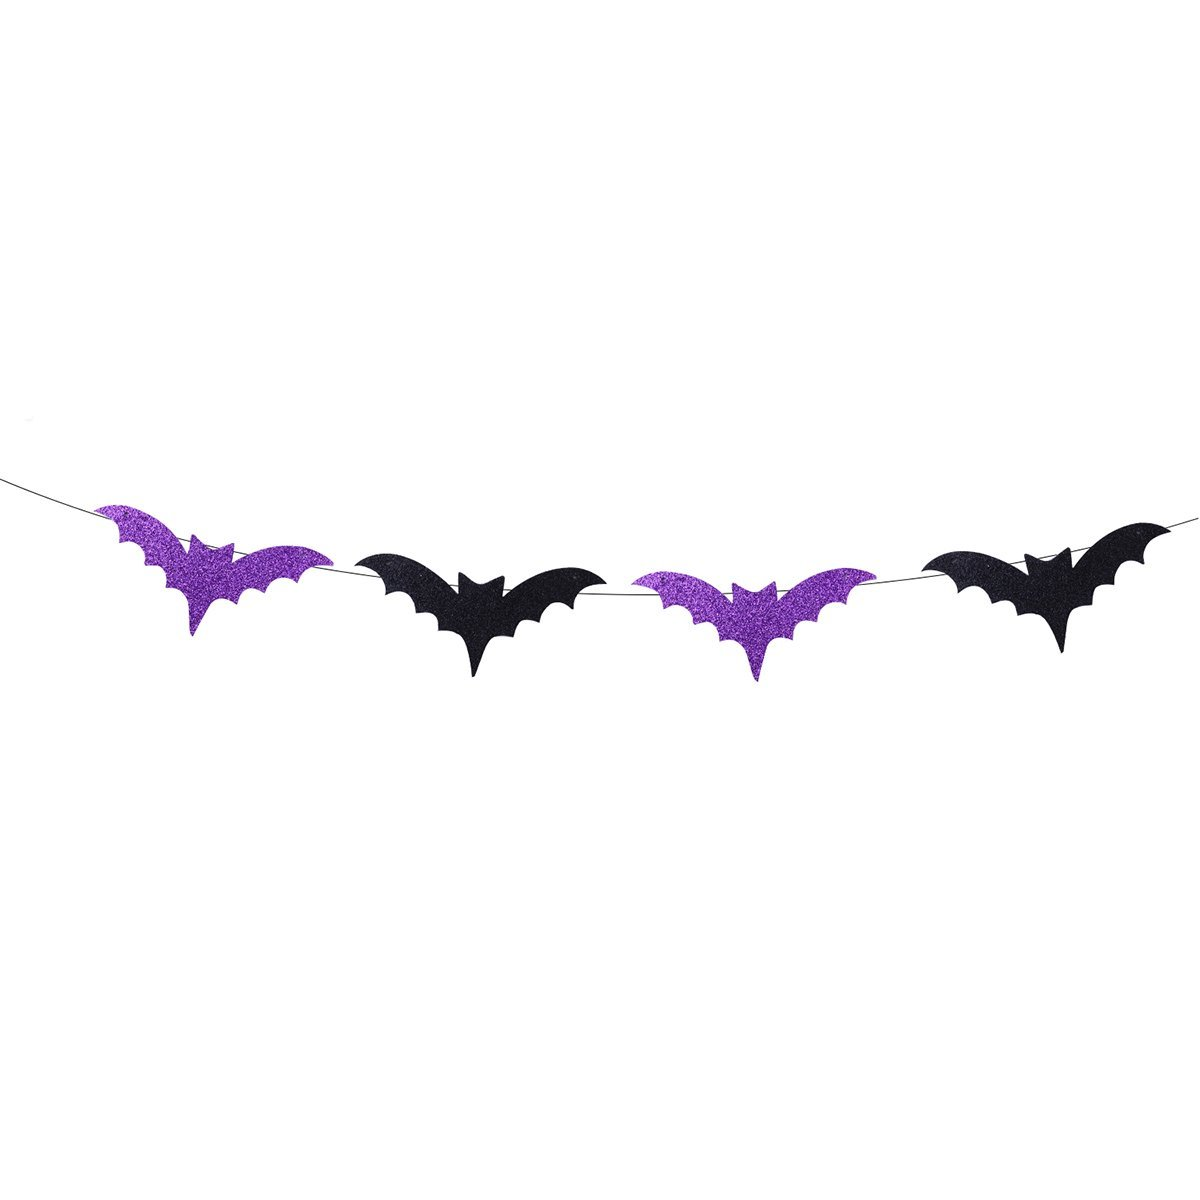 Tinksky Halloween Props Ornaments Black Glittering Bat Shape Bunting Banners Garlands Home Party Decoration halloween banner